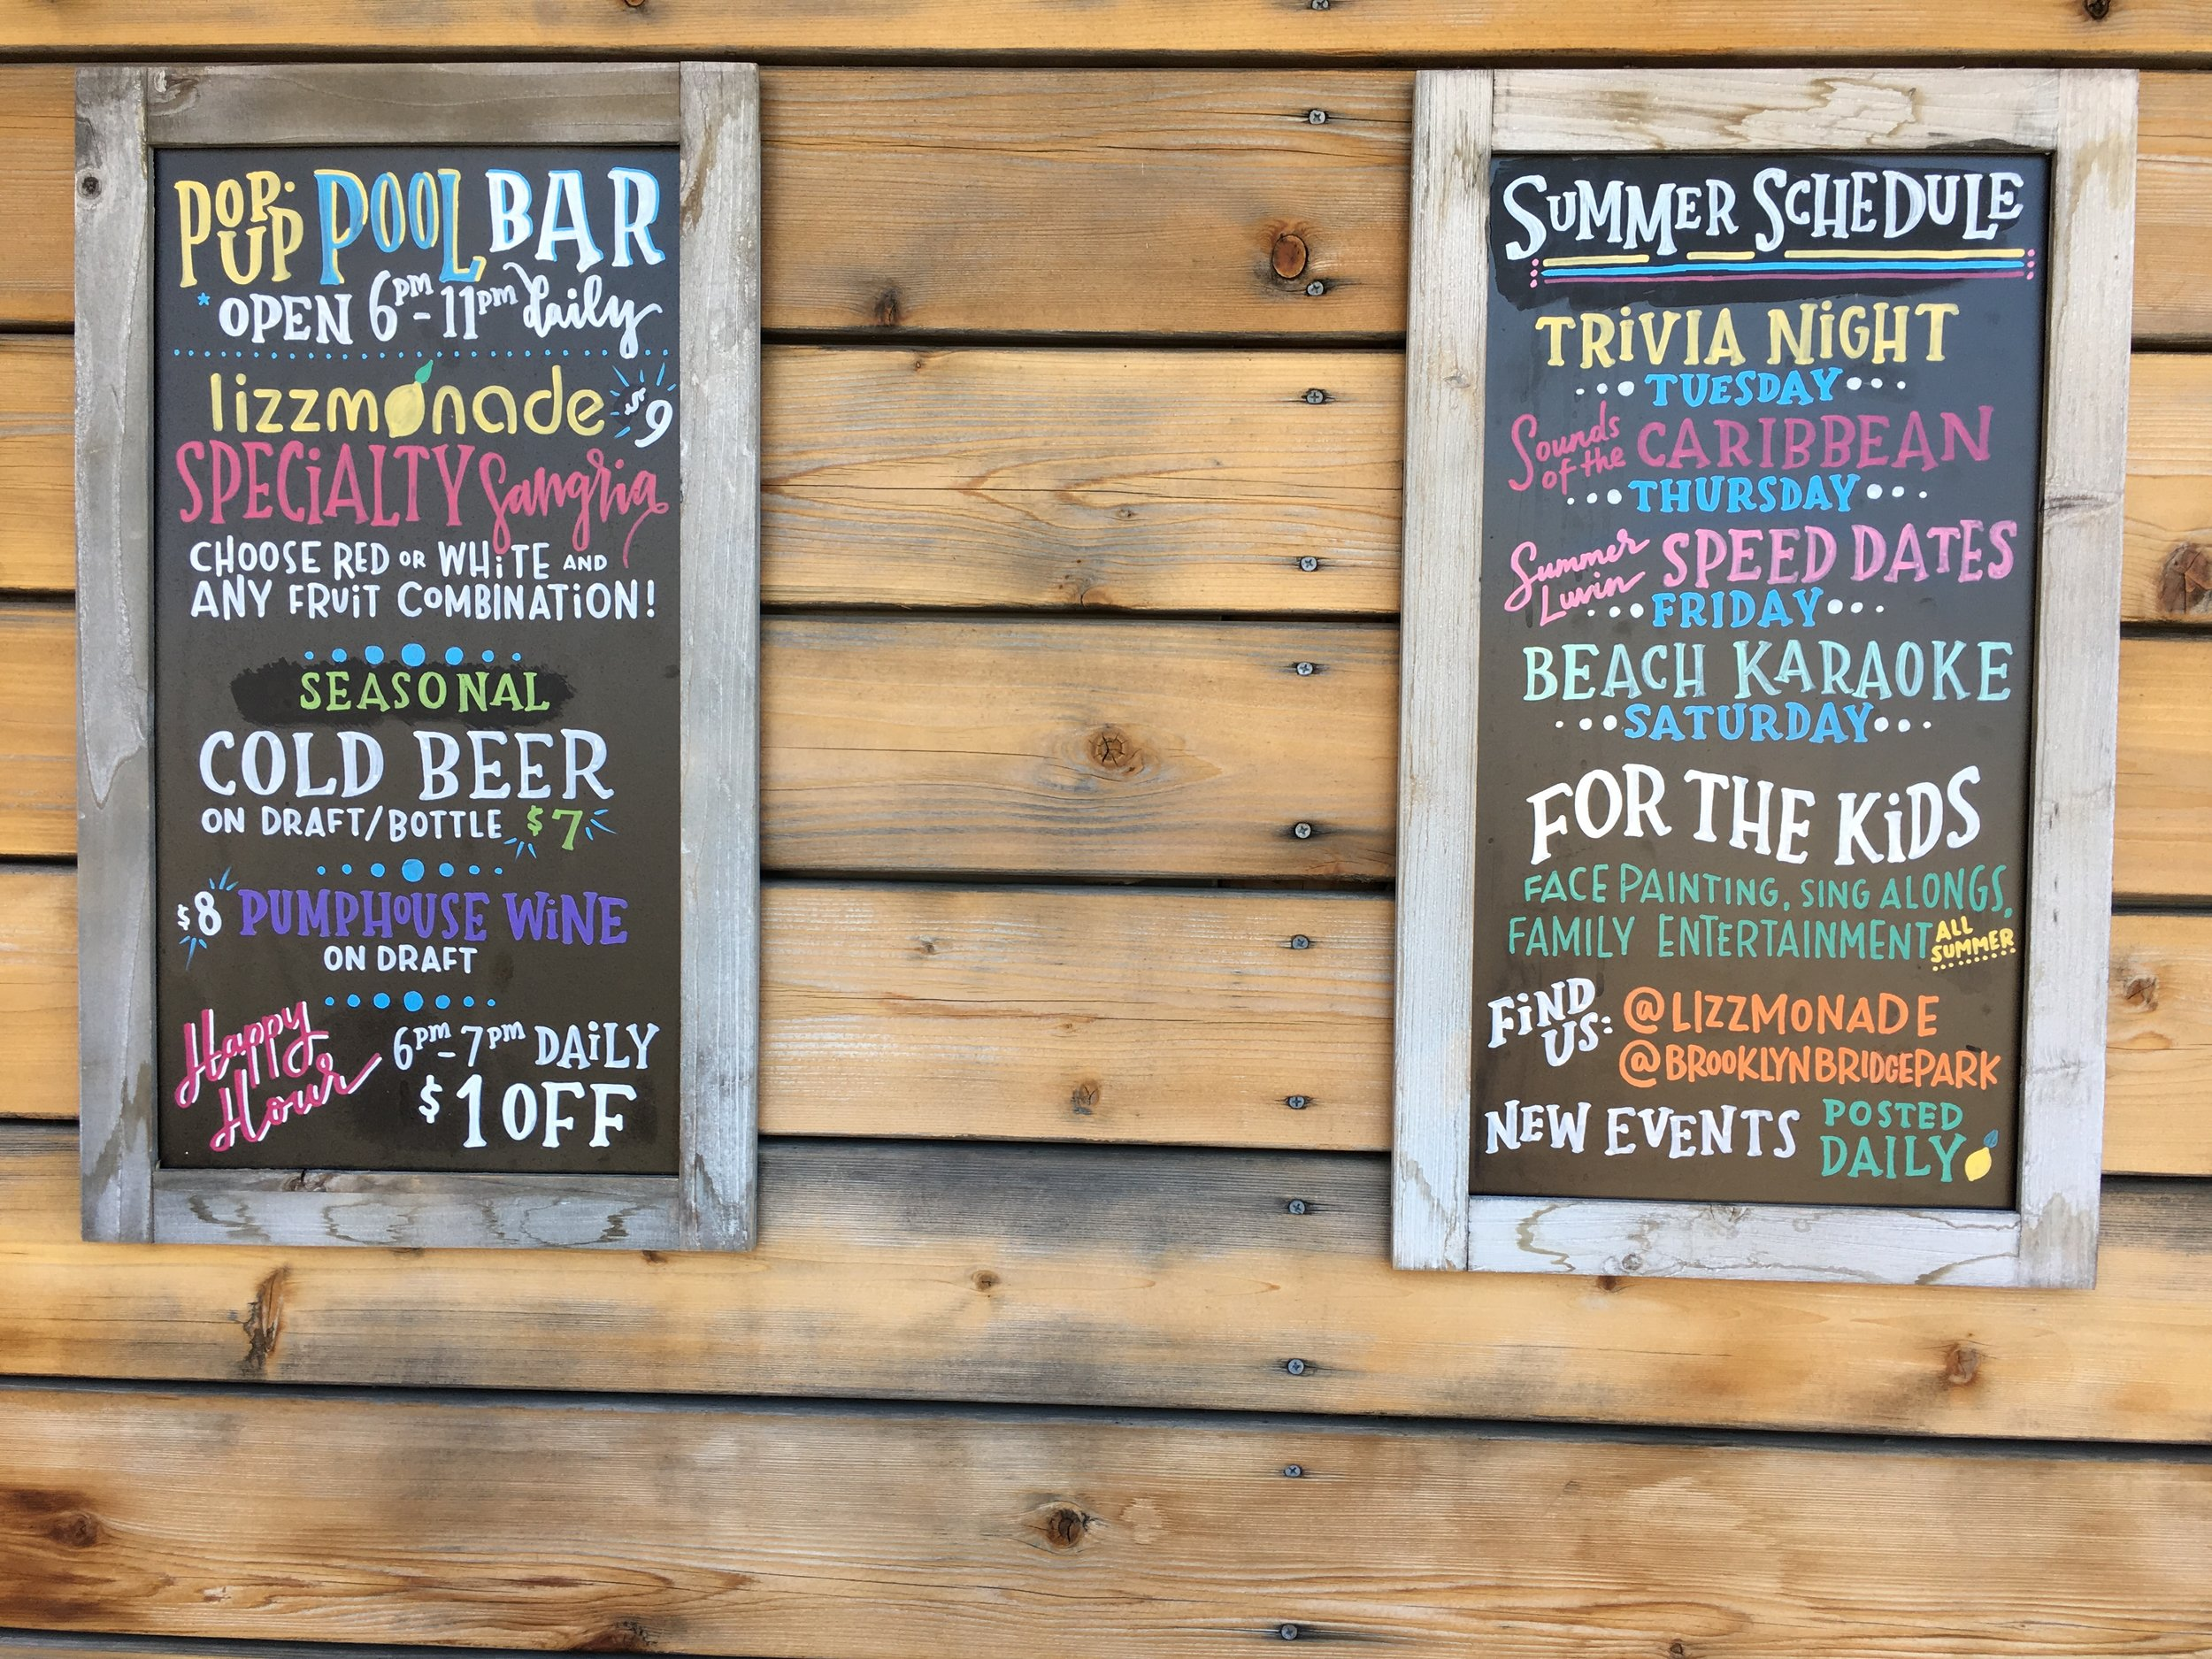 Brooklyn Bridge Park Pop up Bar including speed dating.